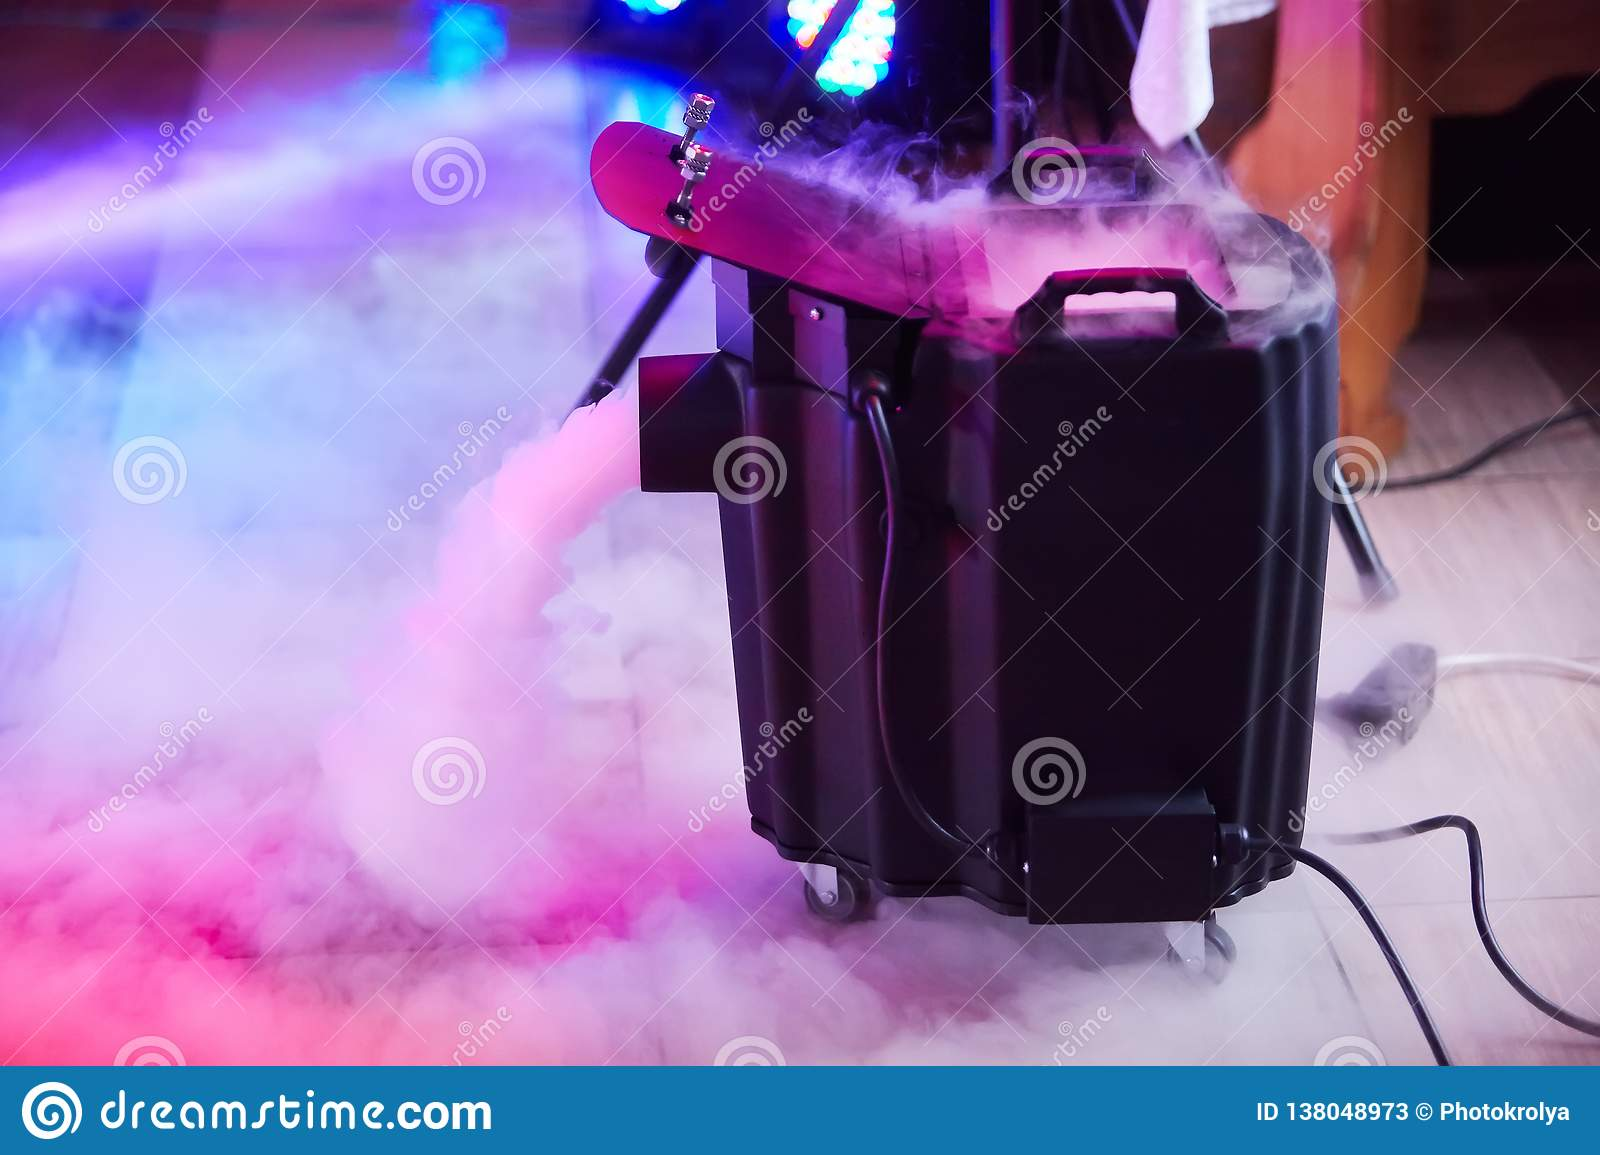 Modern smoke/fog dry ice device in action.